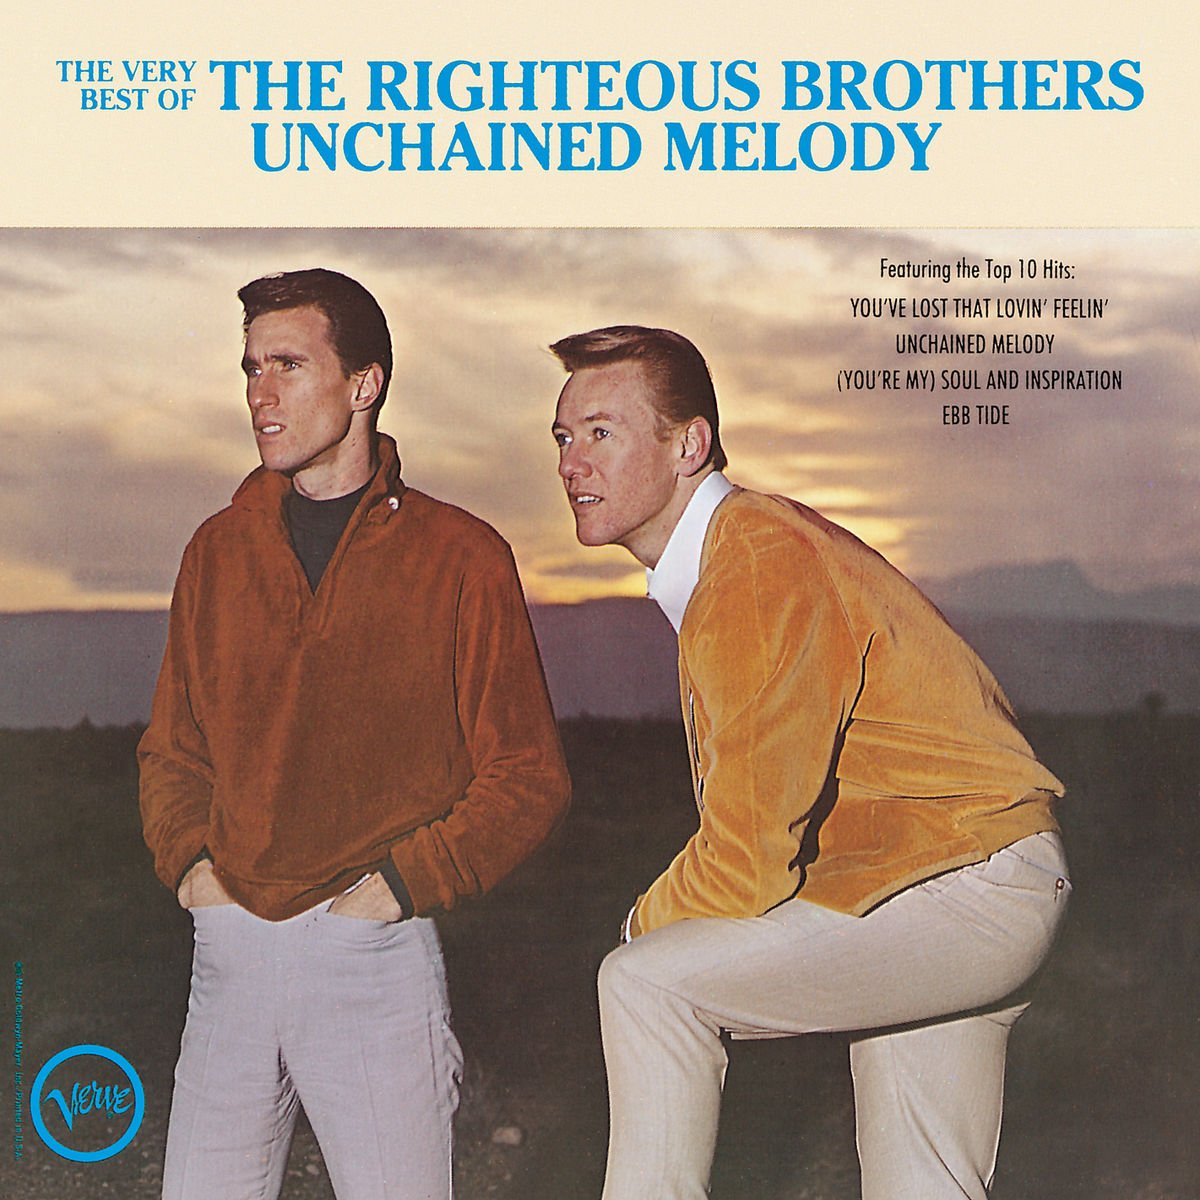 righteous brothers unchained melody mp3 скачать бесплатно